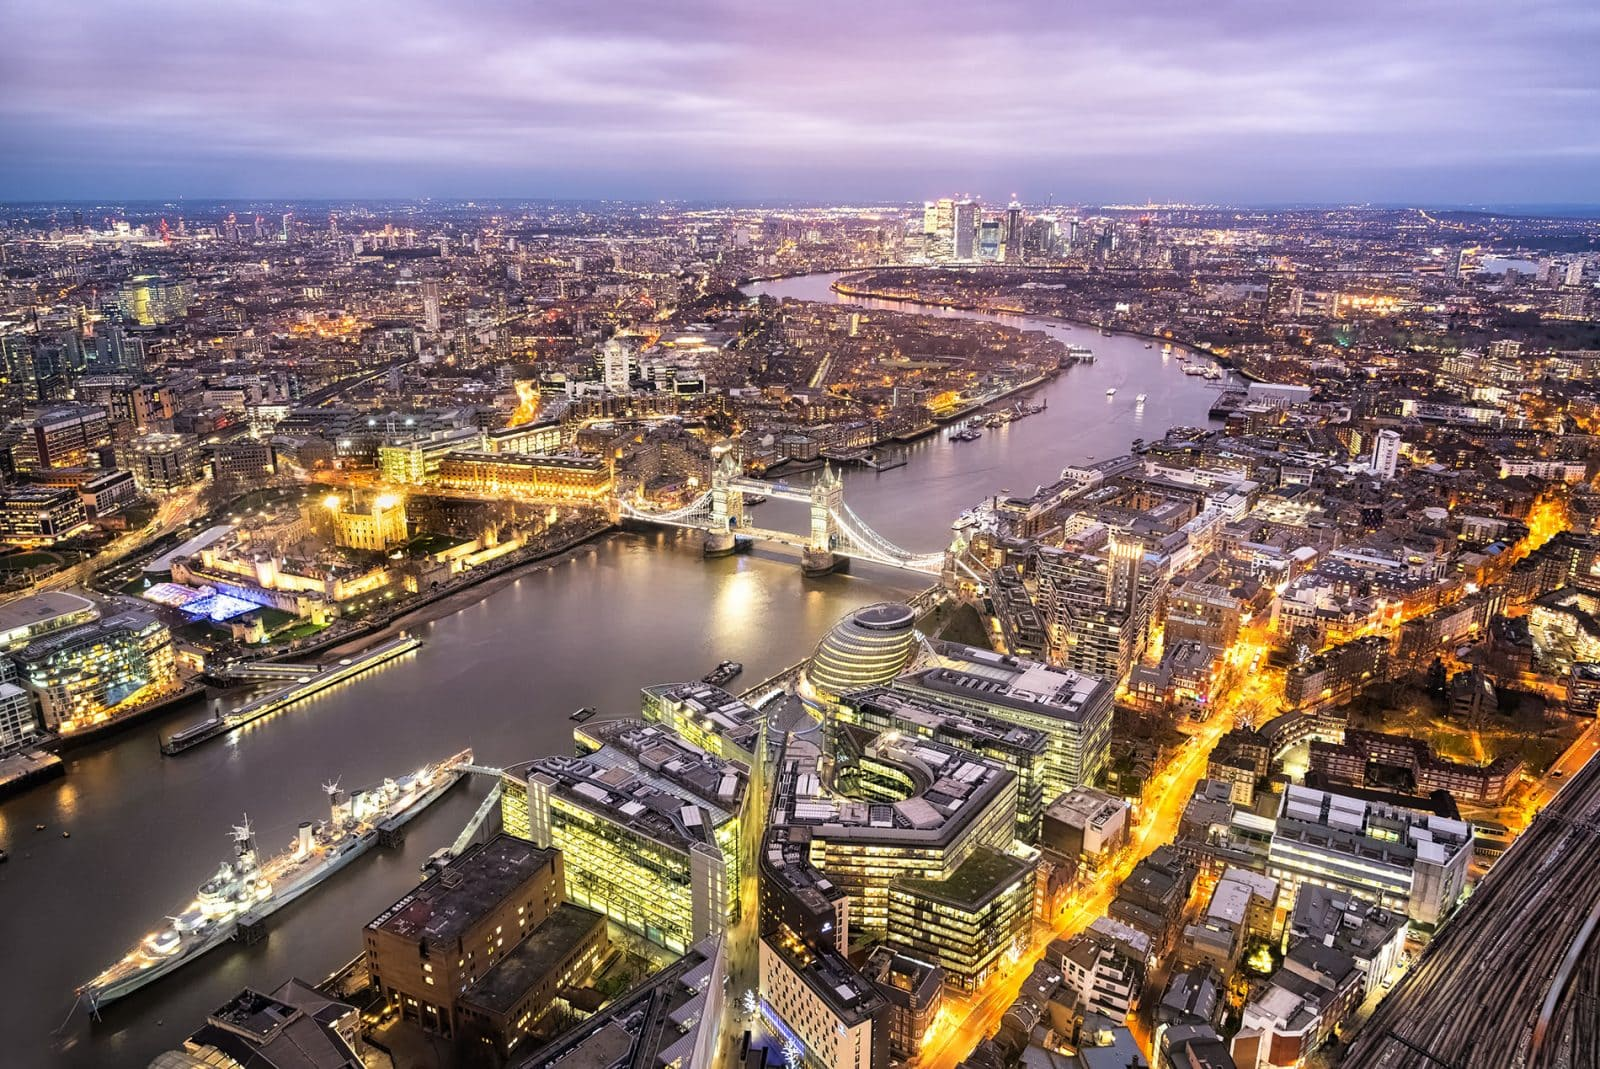 The best view from the Shard in London